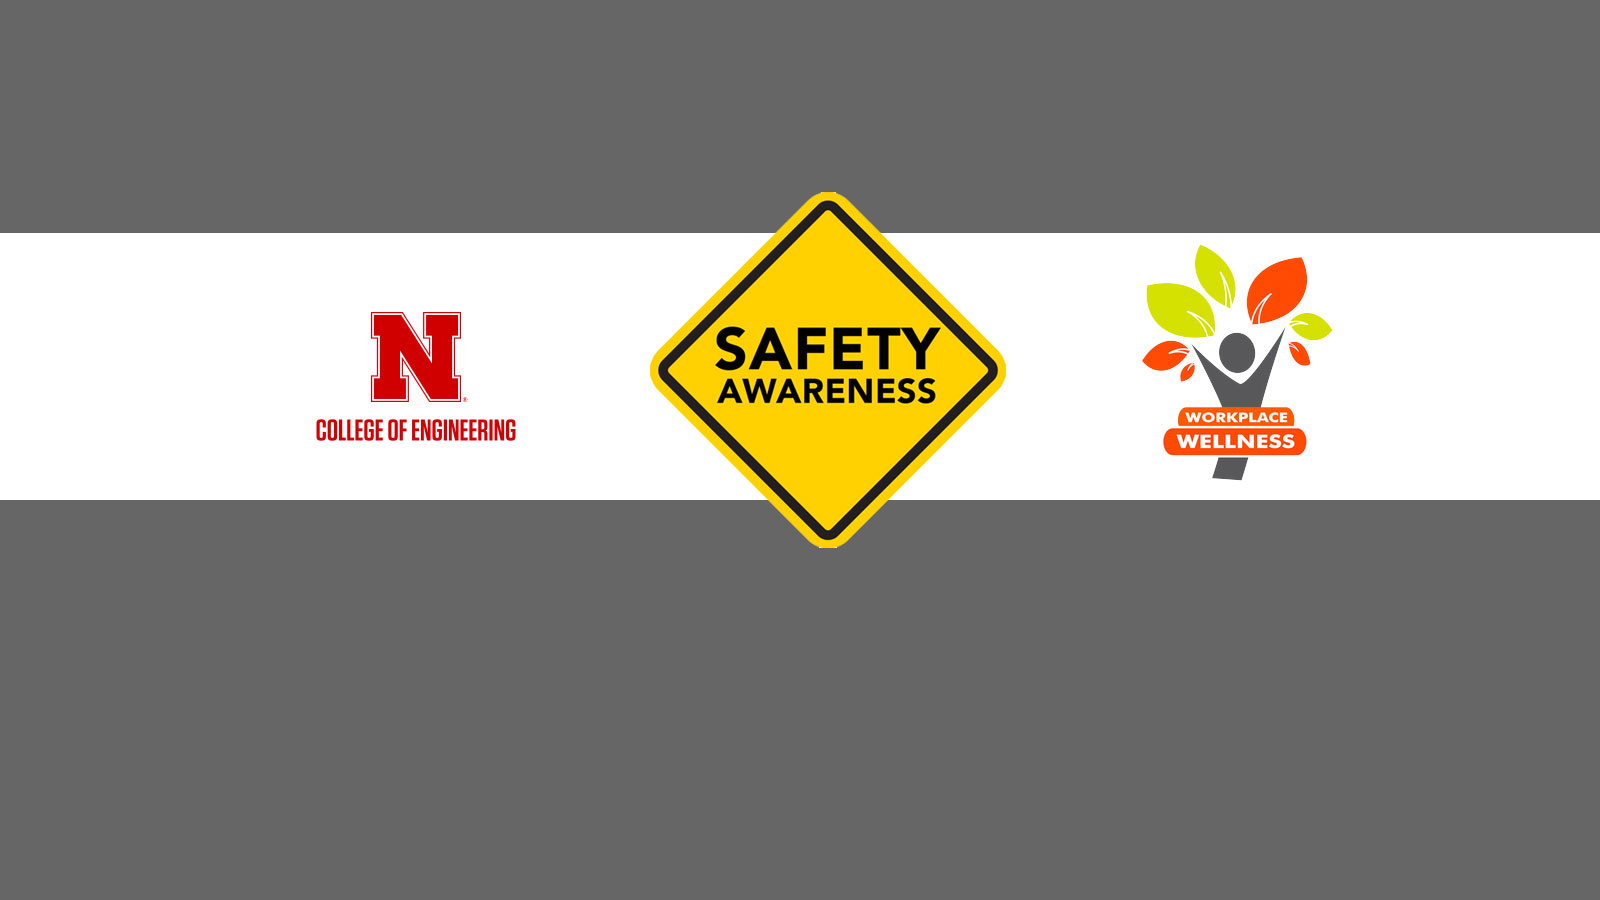 Safety Awareness and Workplace Wellness